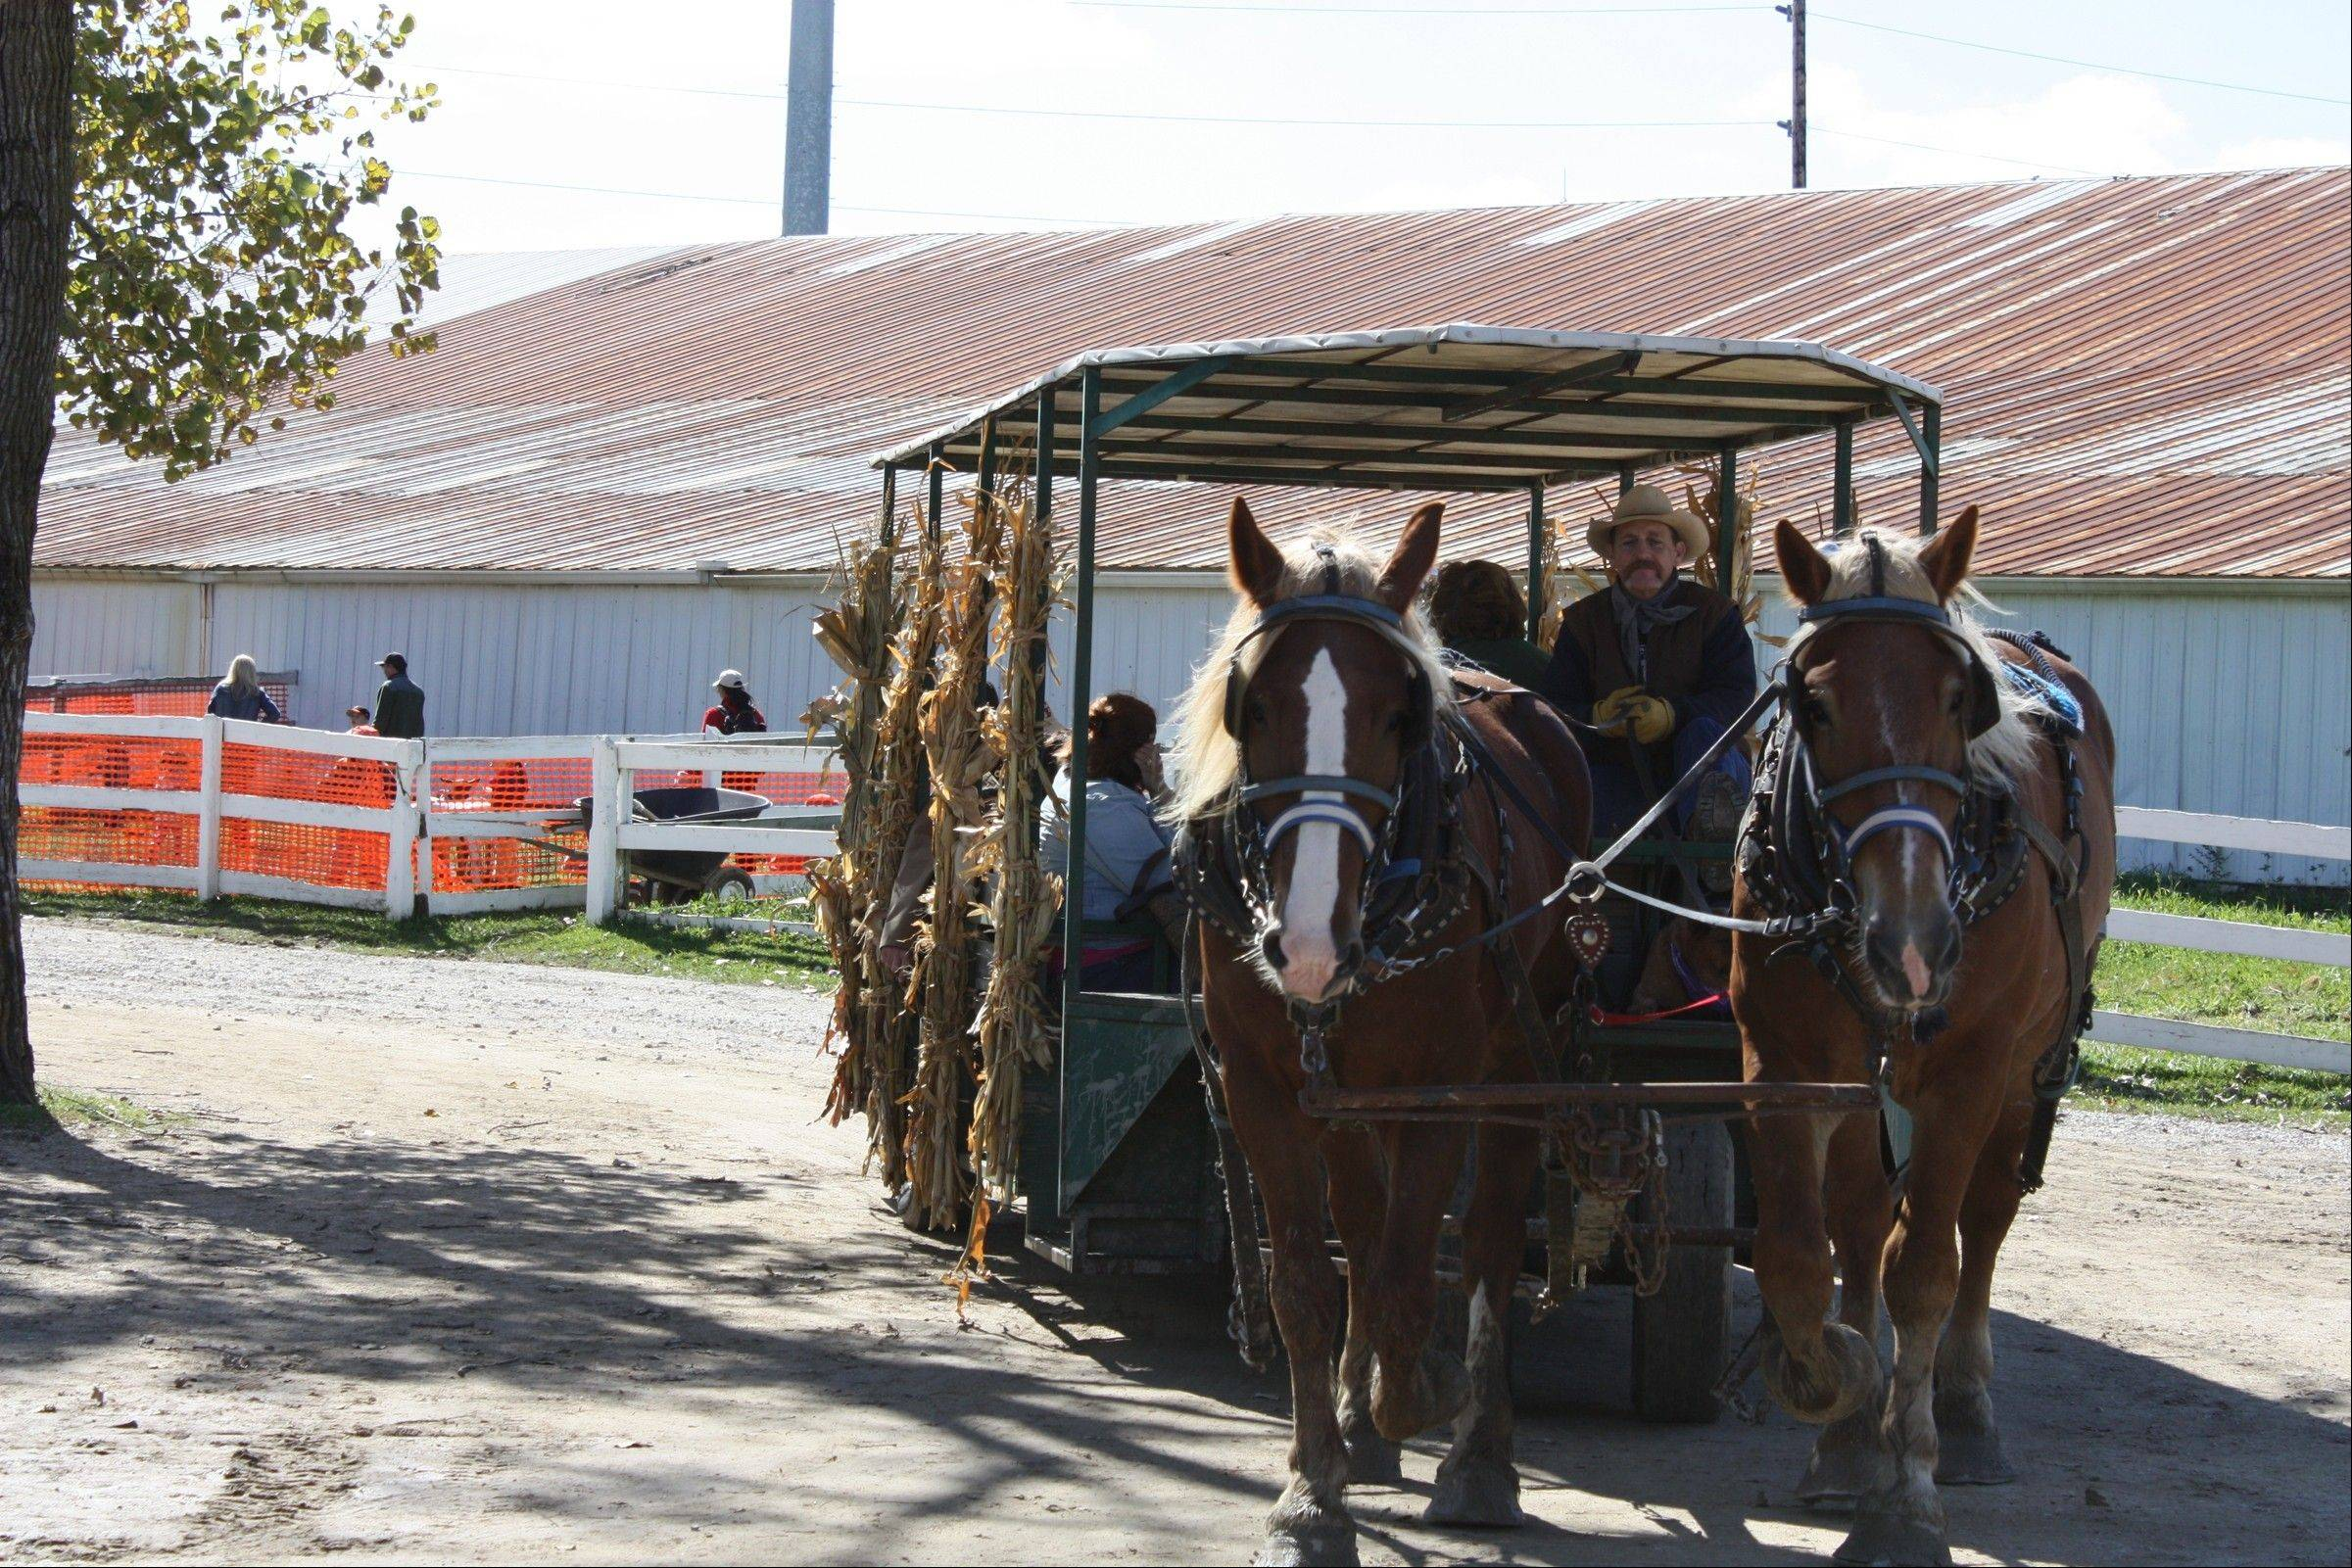 Come take a horse-drawn wagon ride Oct. 6, at the 15th annual Fall Festival, hosted by the Palatine Park District.